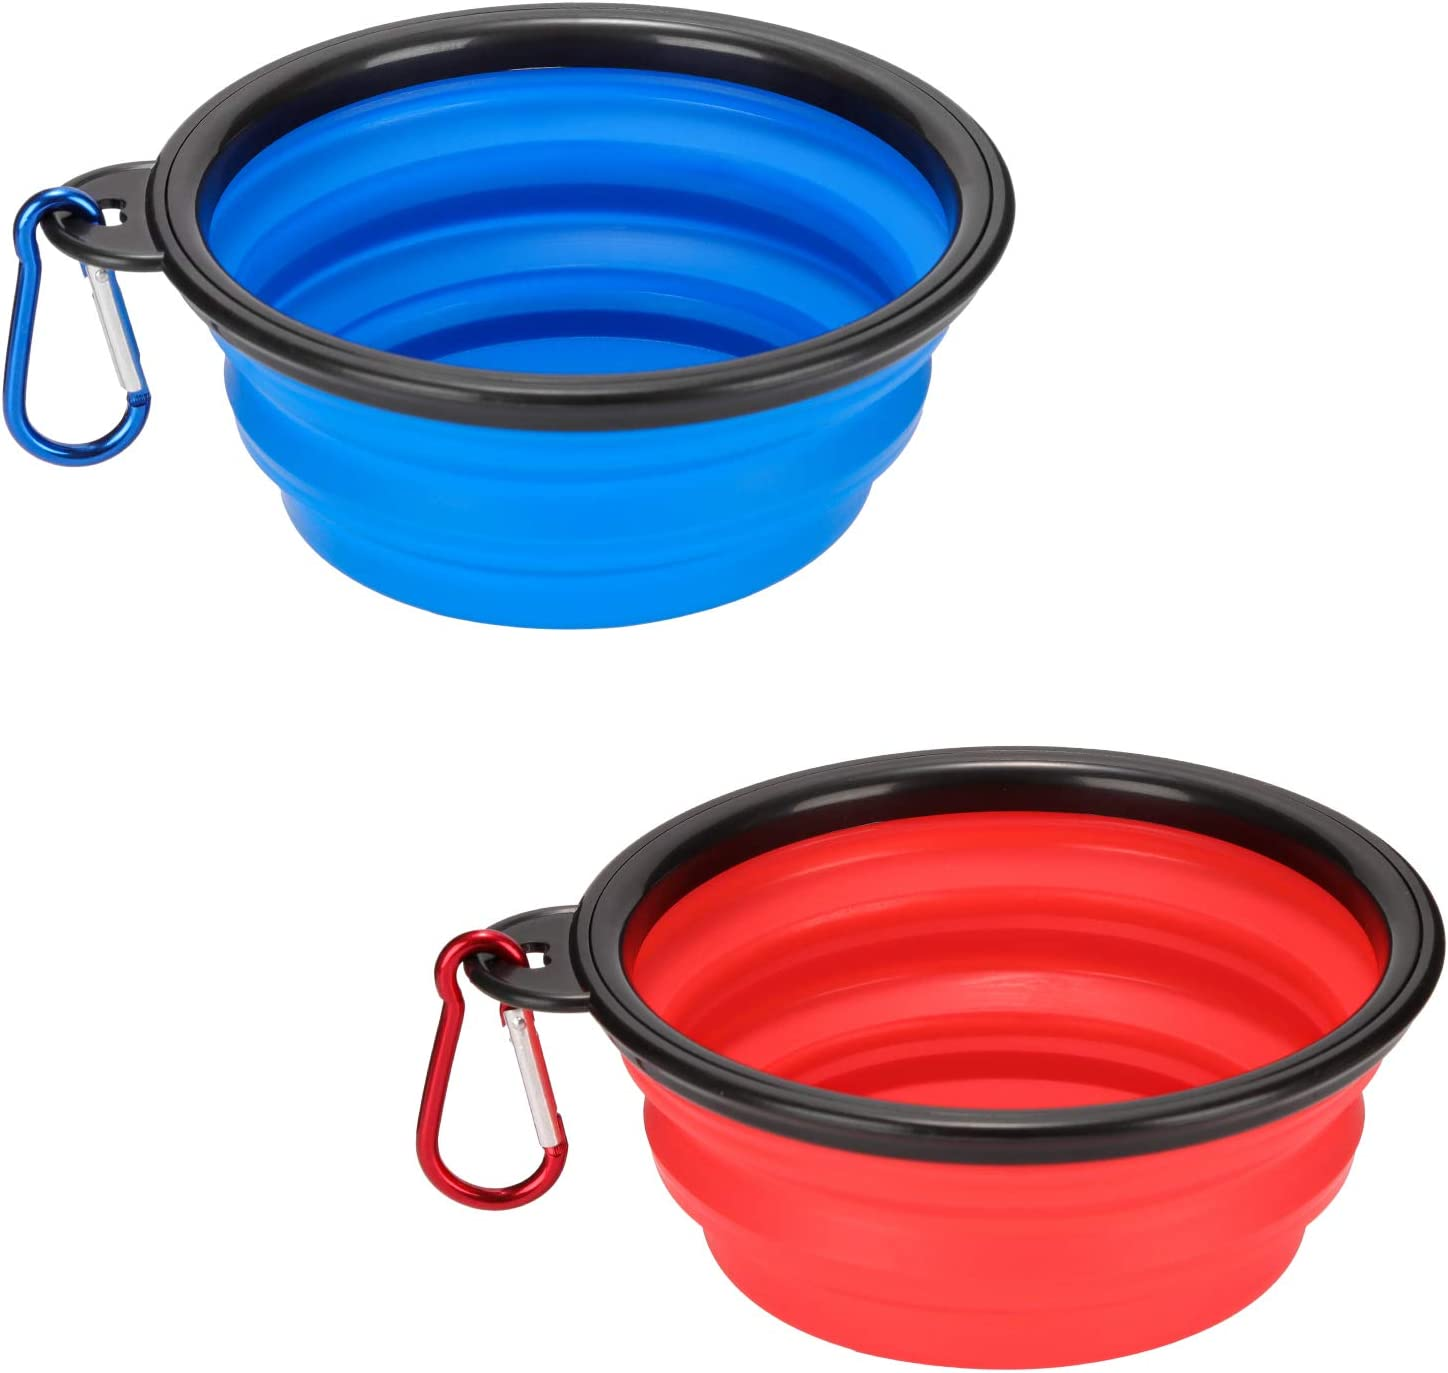 Emoly 2 Pack Large Size Collapsible Dog Bowl, Food Grade Silicone BPA Free, with Carabiner Clip Foldable Expandable Cup Dish for Pet Cat Food Water Feeding Portable Travel Bowl (Blue & Red)